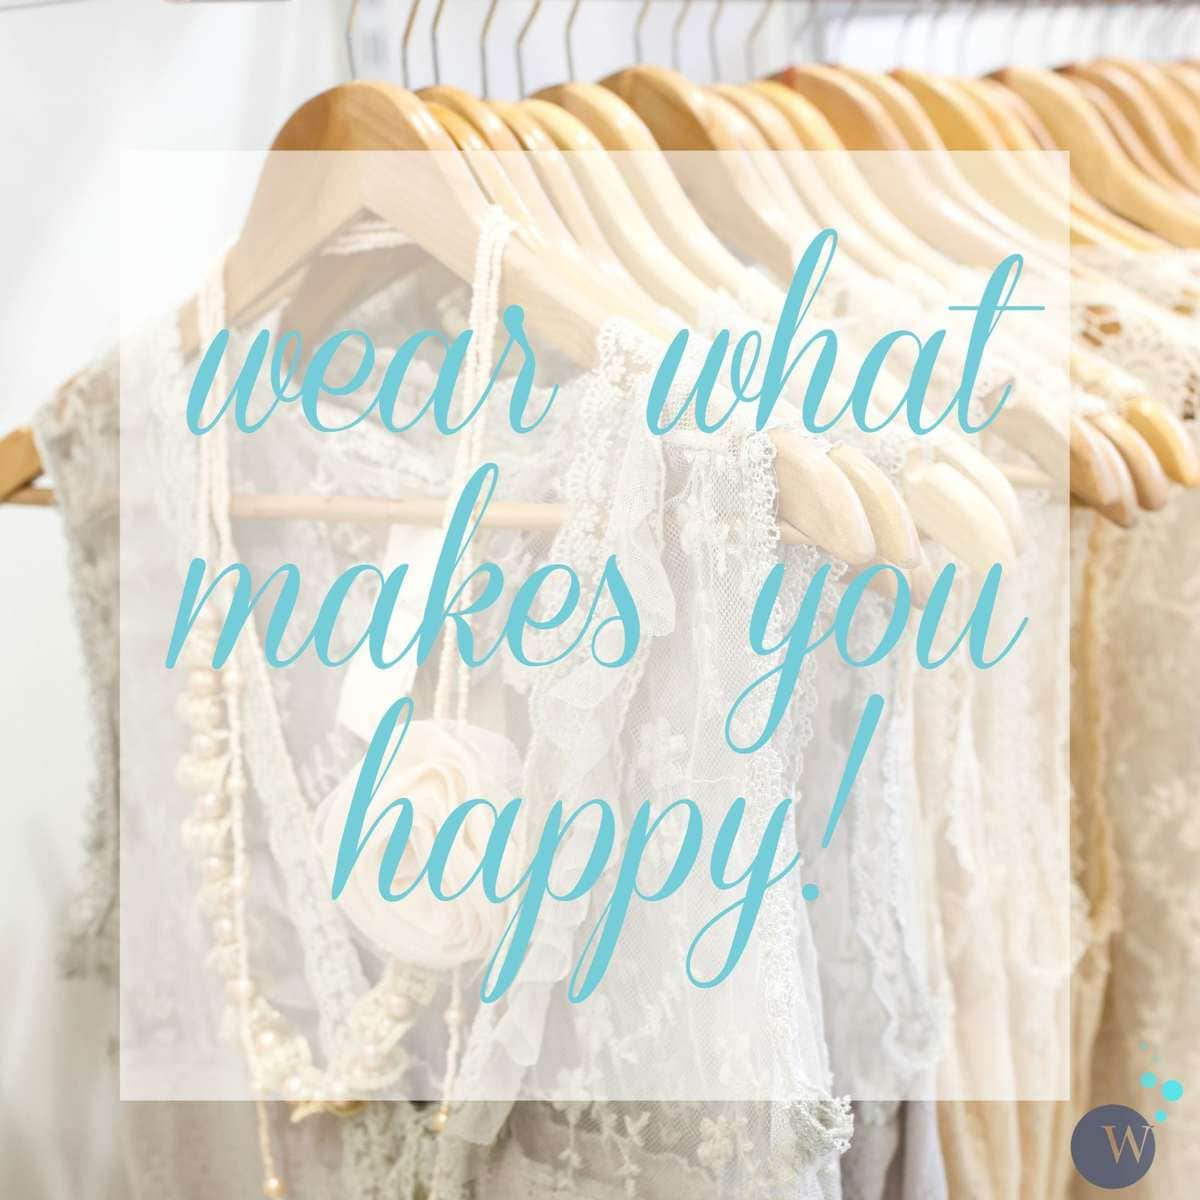 Where what makes you happy: Discussing flattering fashion in regard to societal expectations versus personal style. By Wardrobe Oxygen